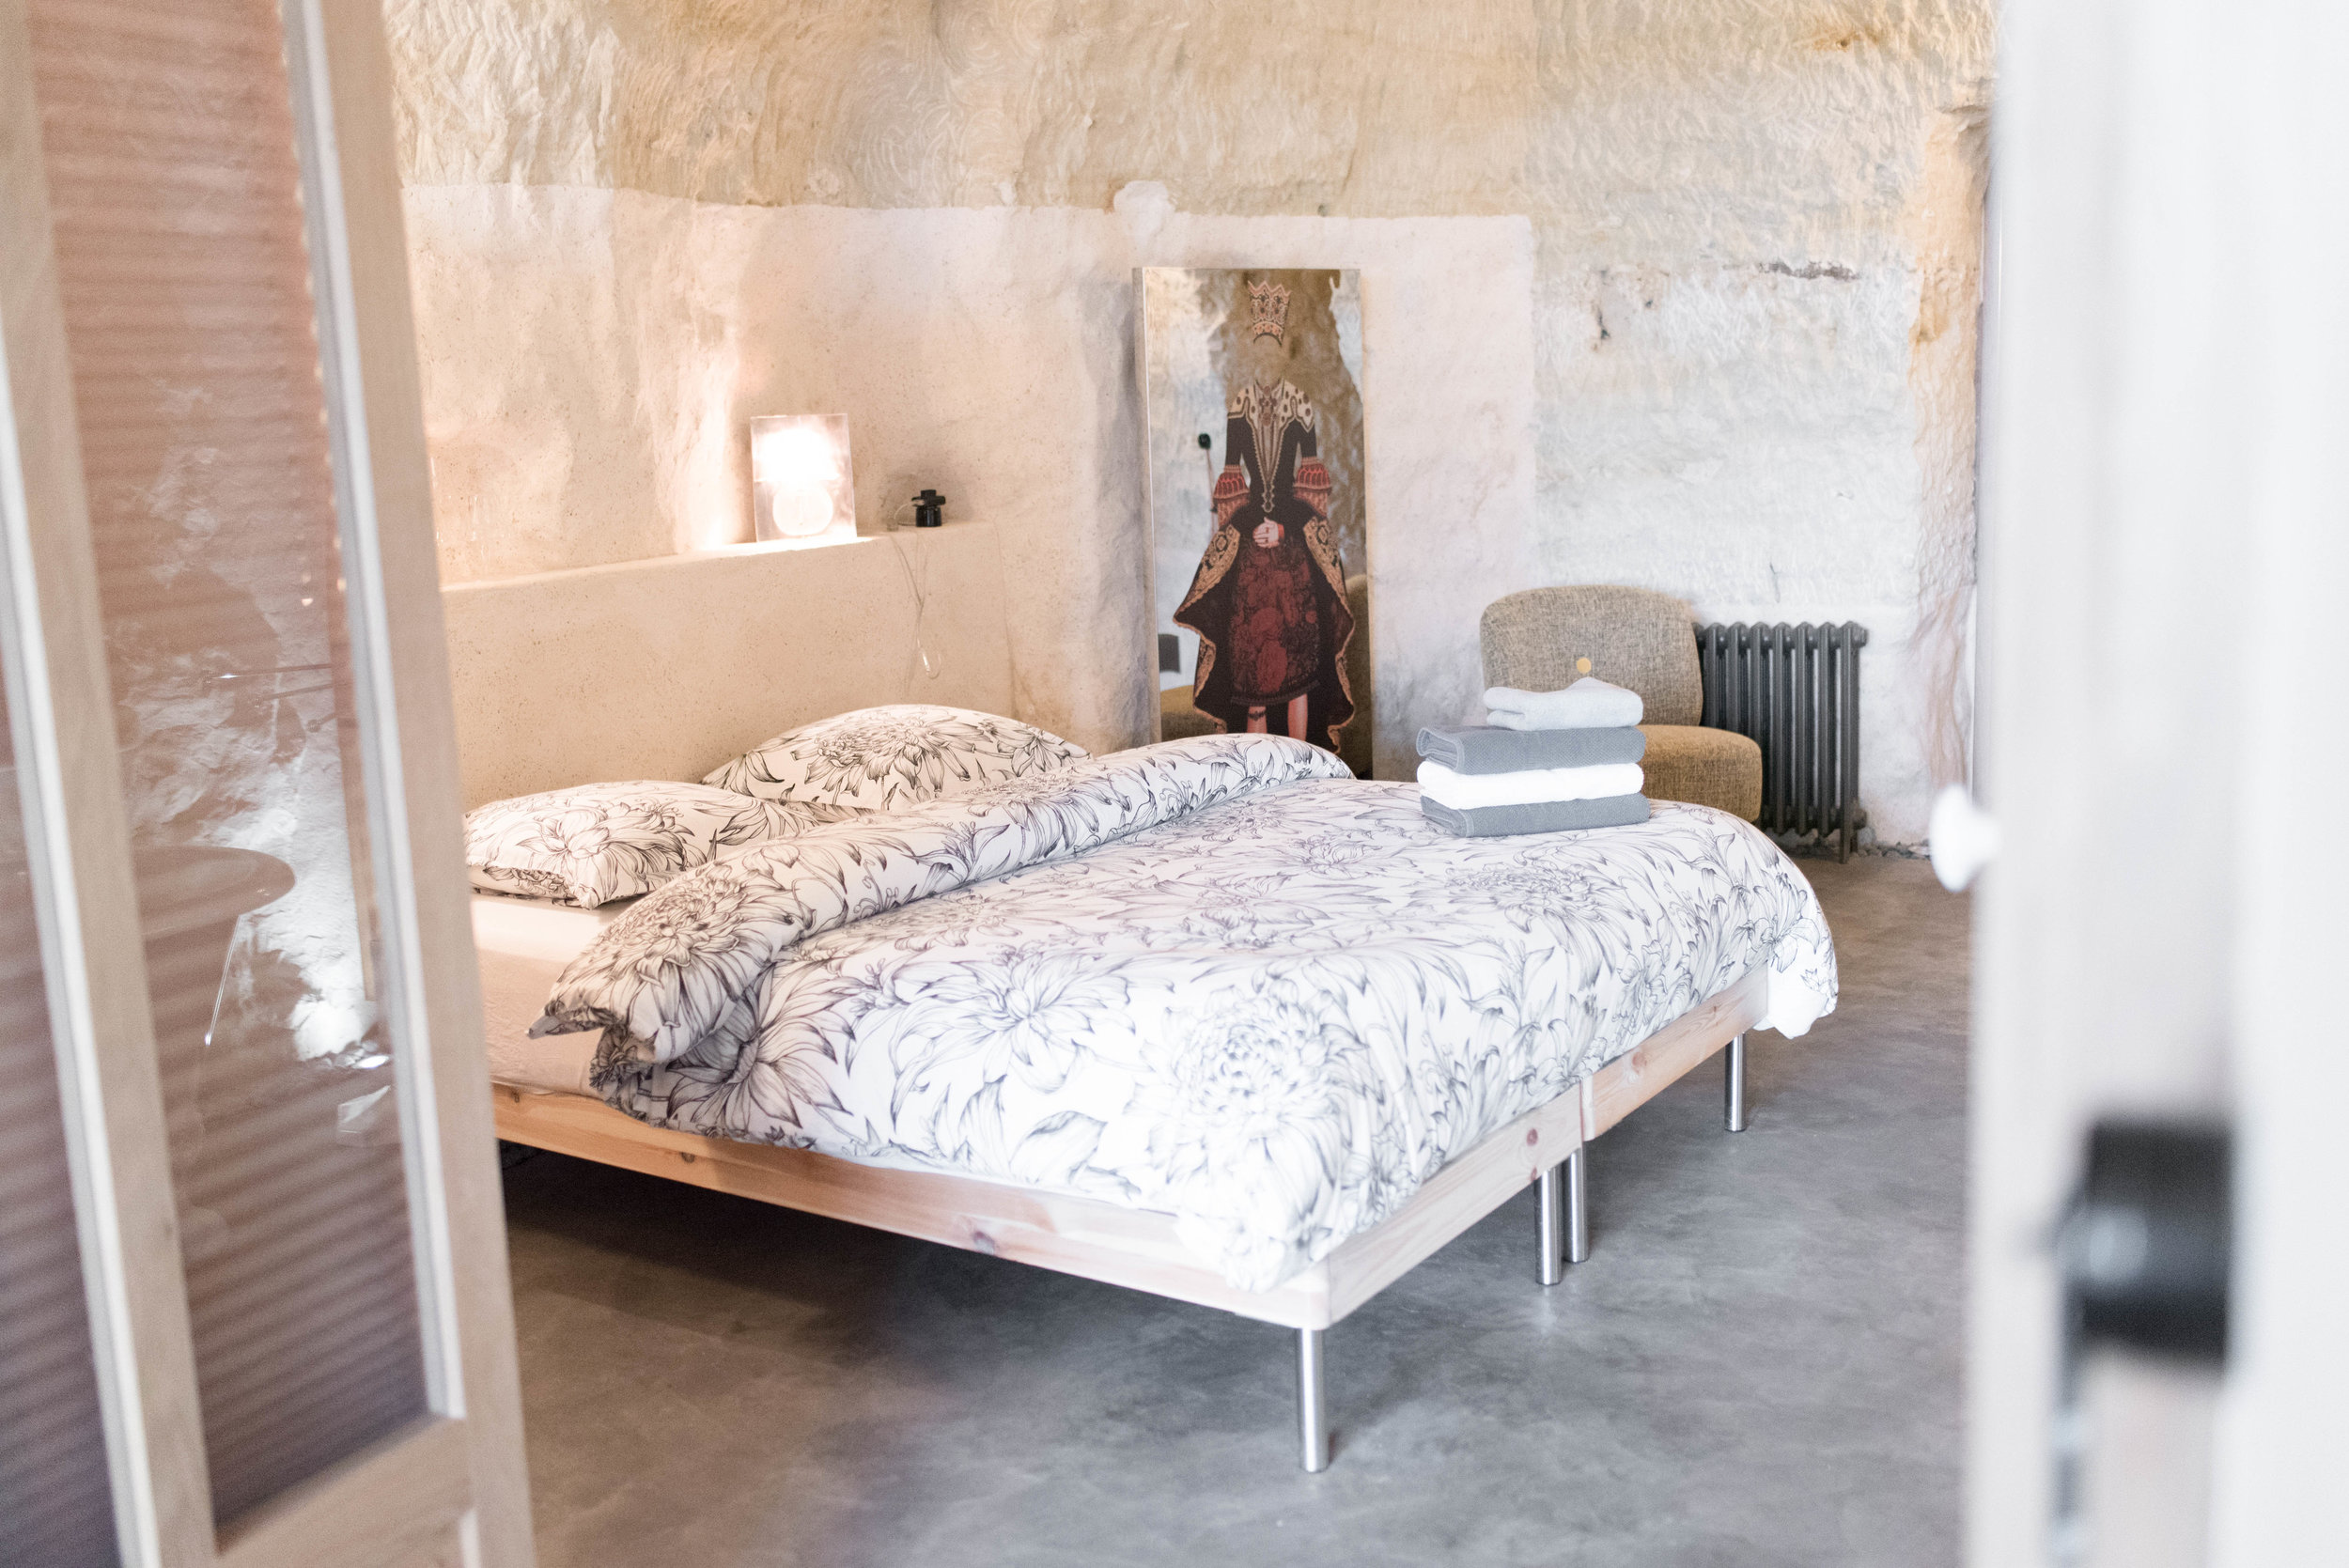 Where to Stay in Loire Valley, France | The Amboise Troglodyte